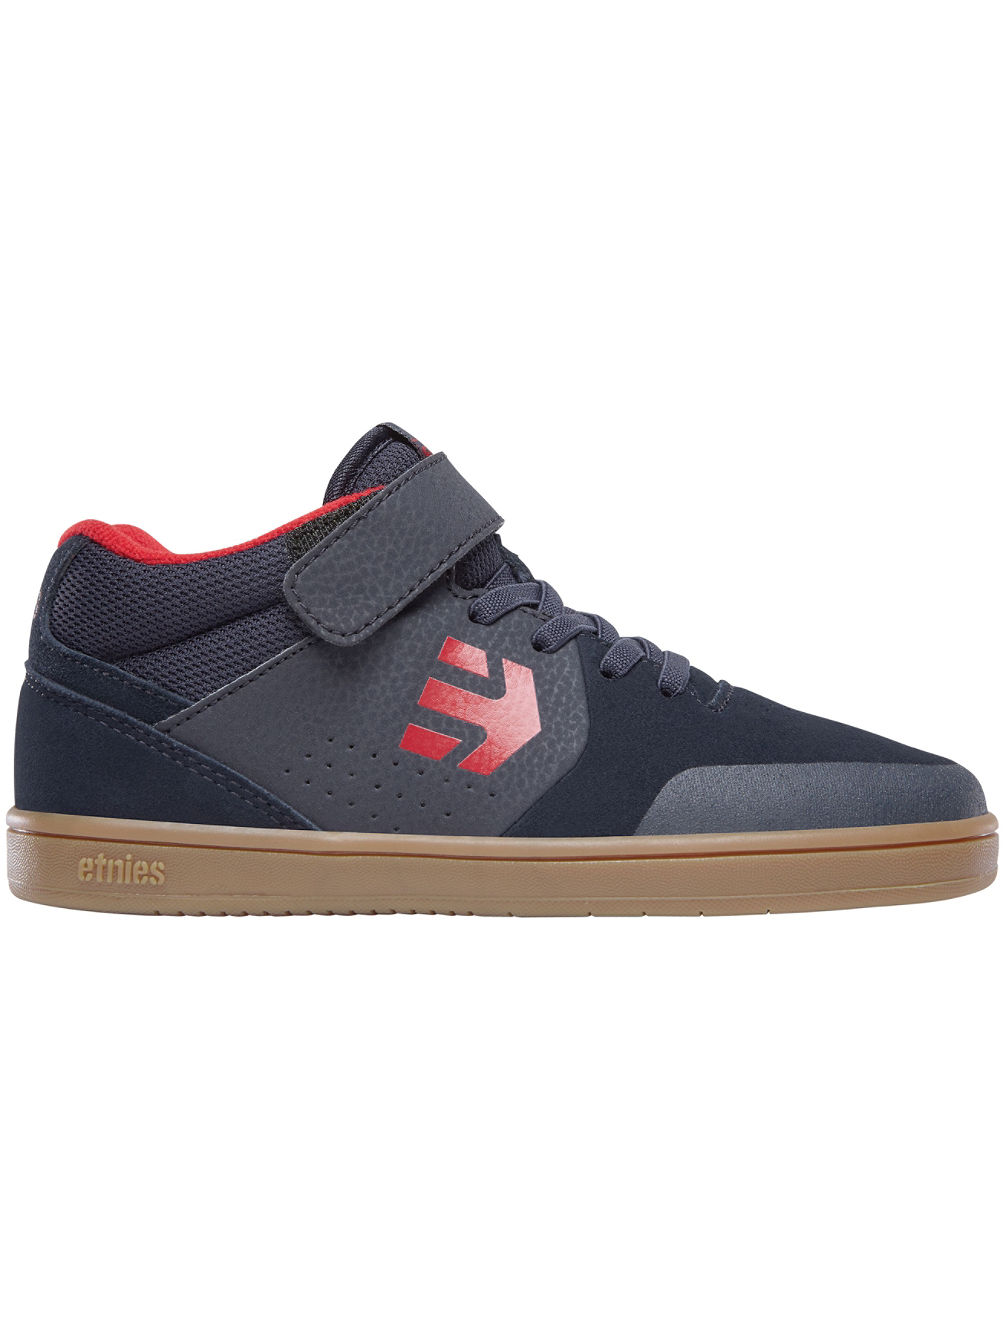 Marana MT Skate Shoes Boys